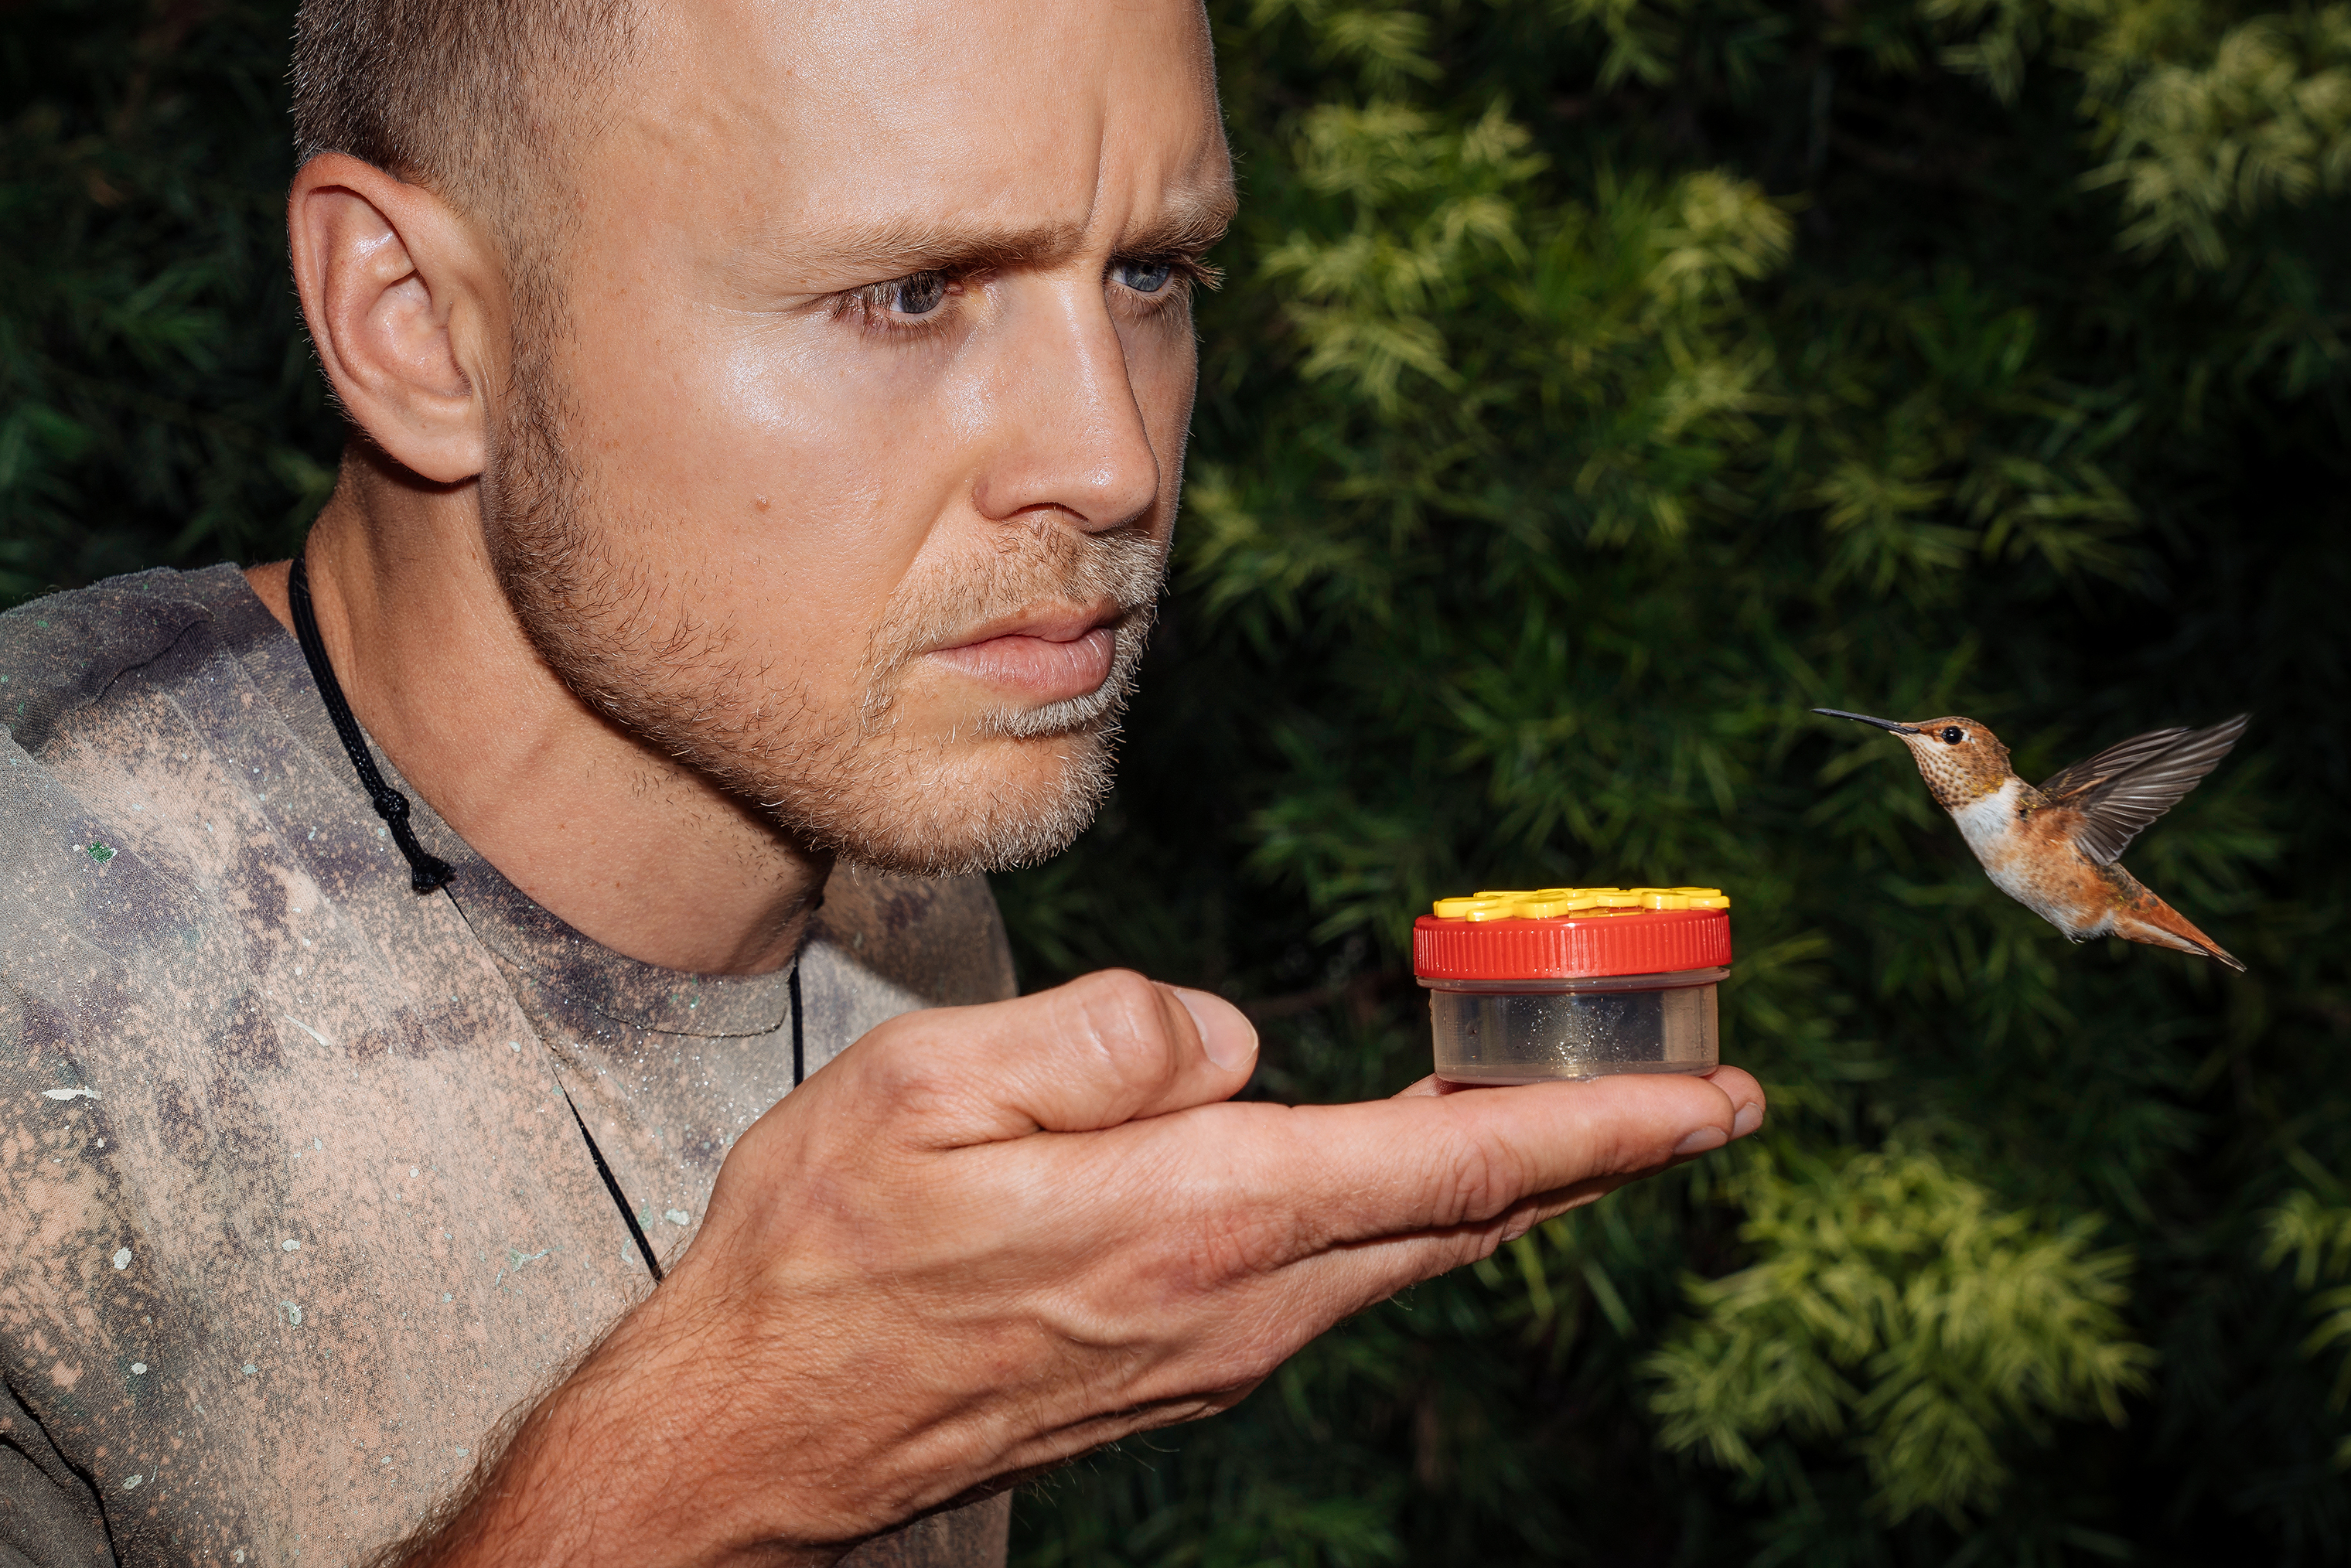 Spencer Pratt feeds hummingbirds at his home in the Pacific Palisades neighborhood of Los Angeles, California on Friday, June 22, 2018.